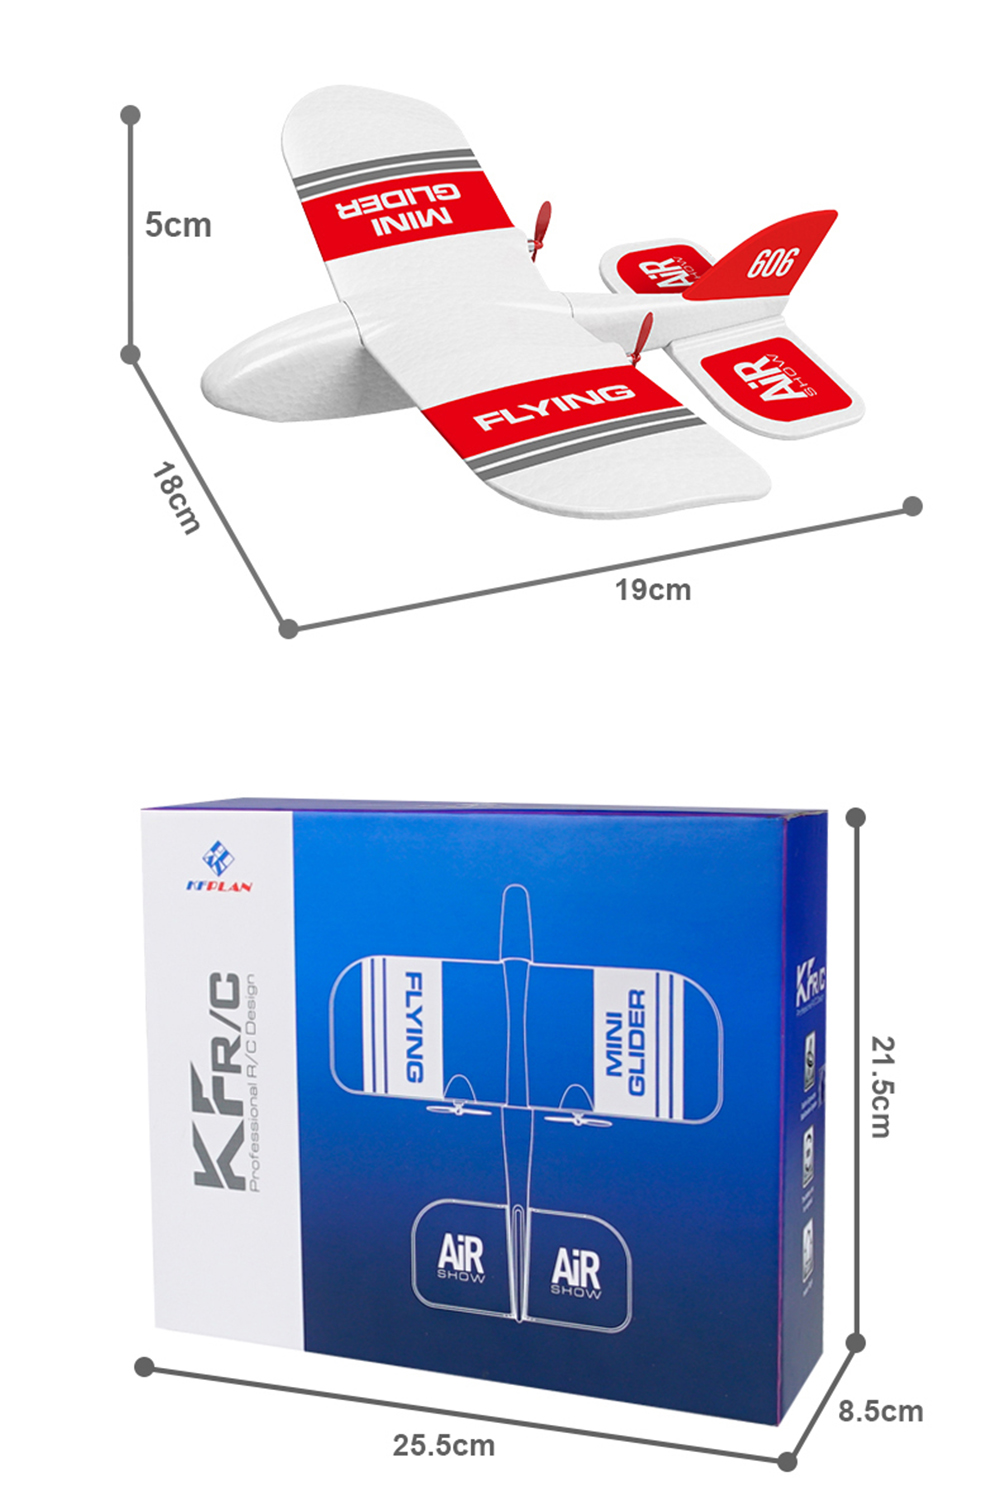 hight resolution of kfplan kf606 2 4ghz 2ch epp mini indoor rc glider airplane built in gyro rtf